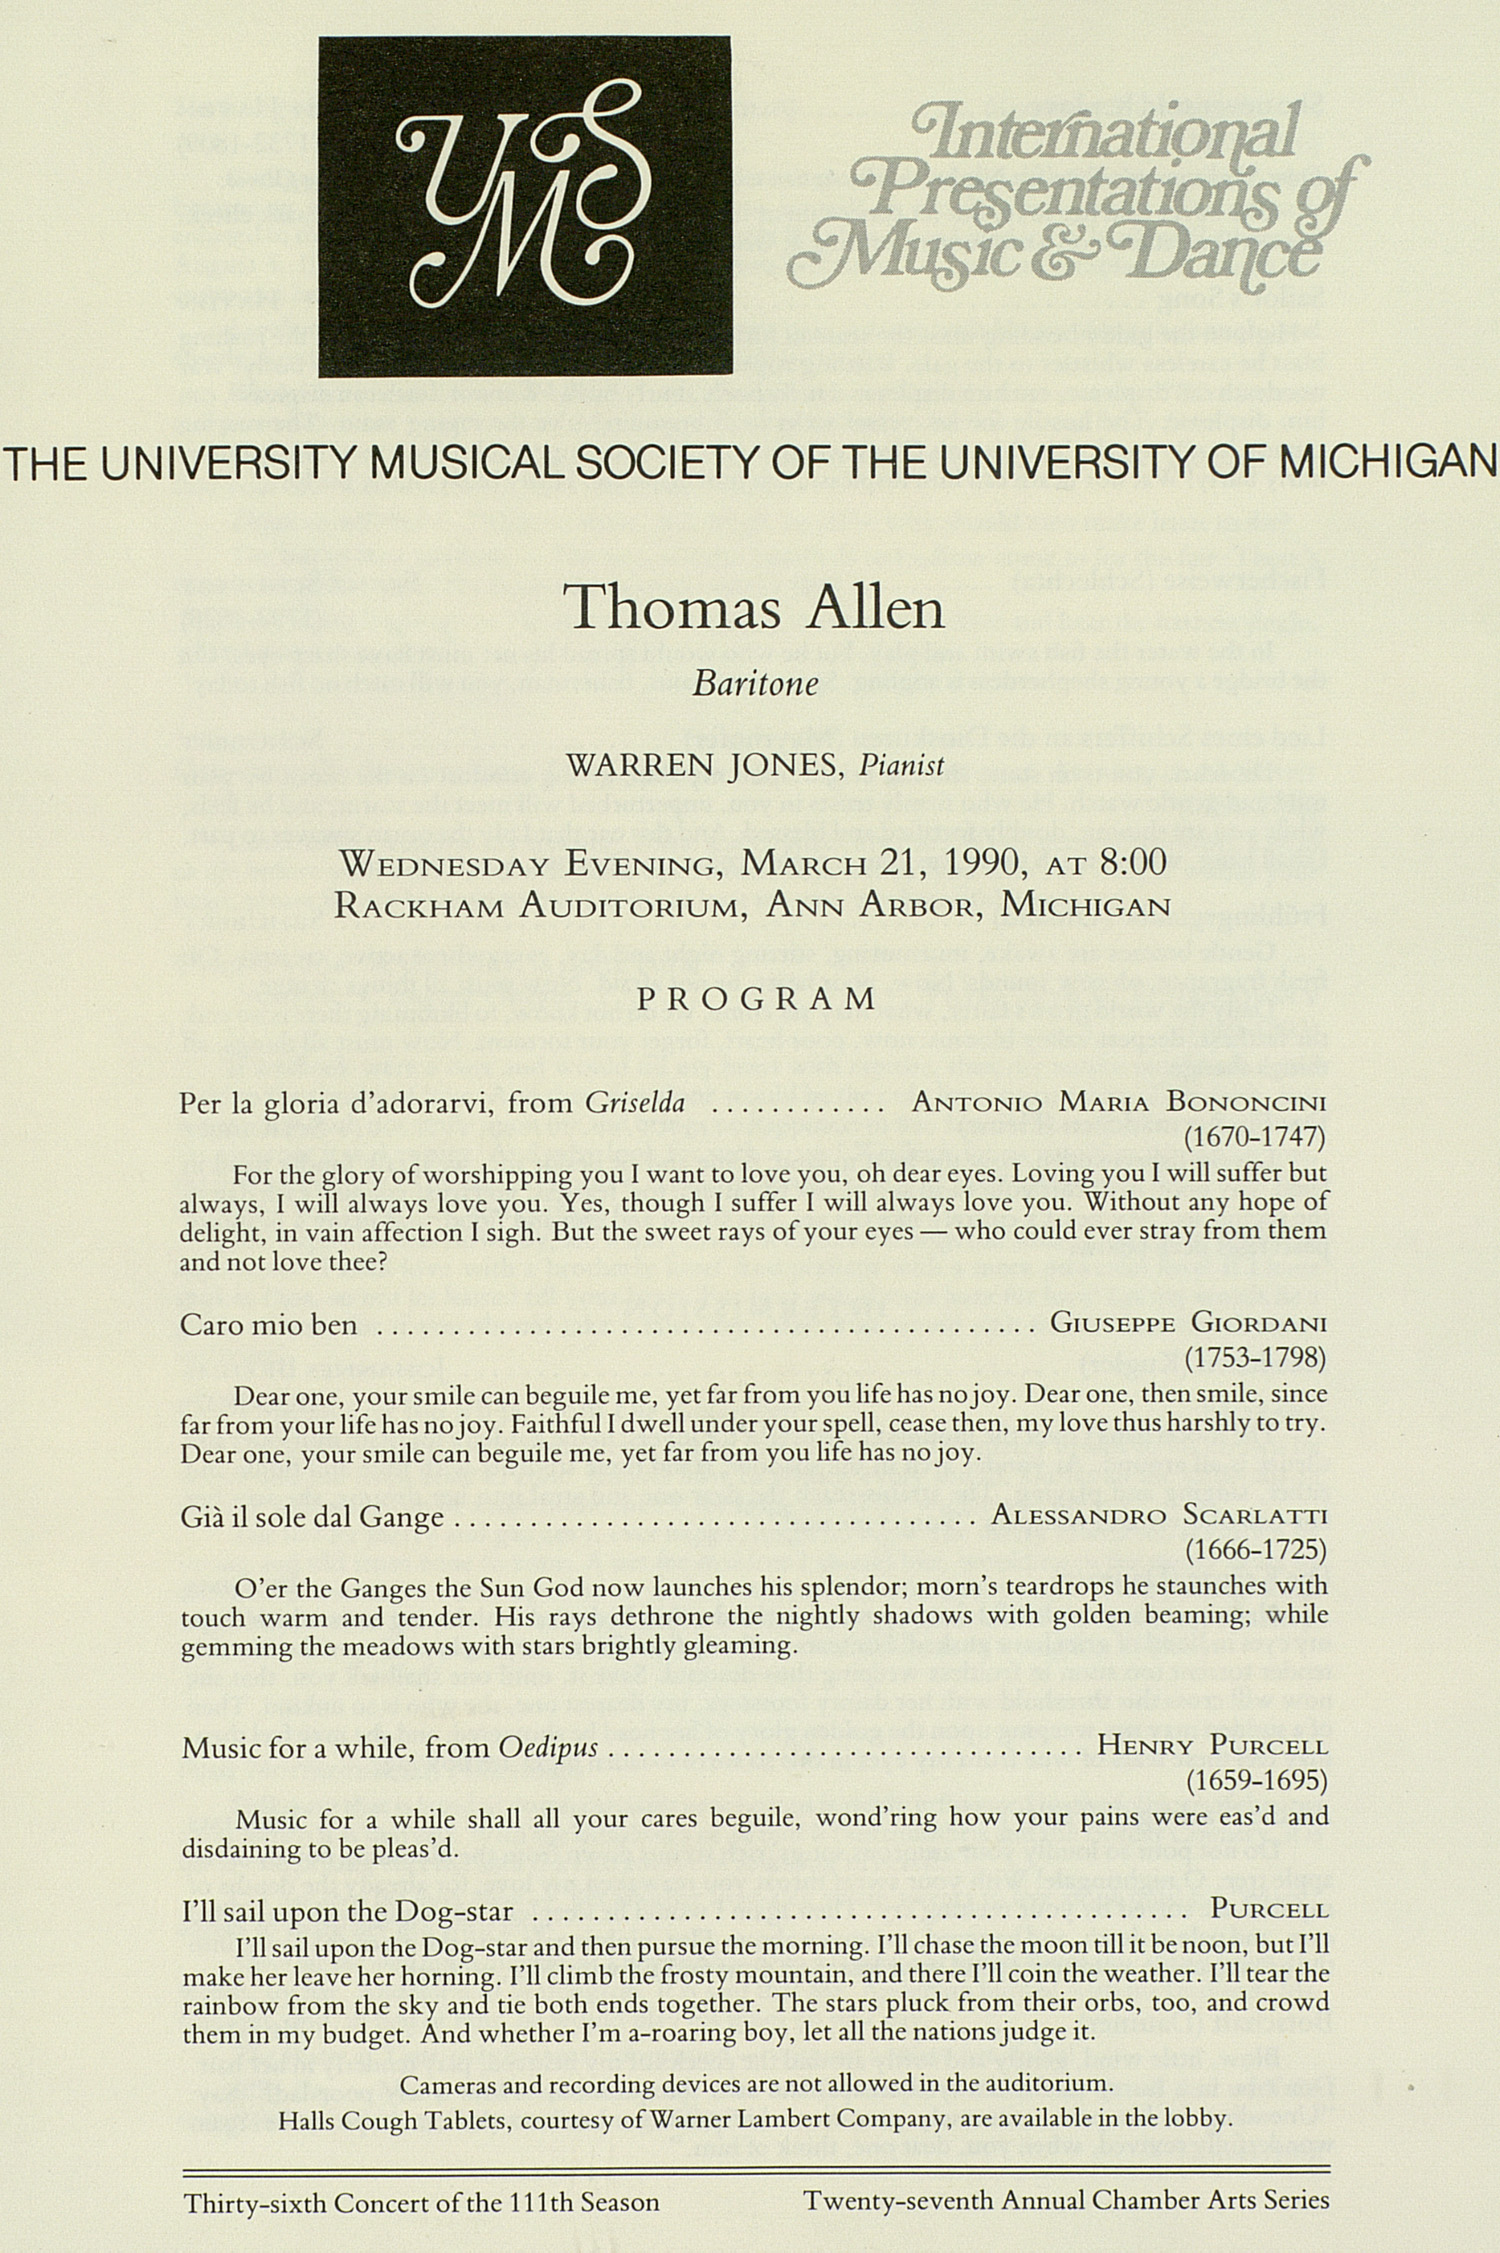 UMS Concert Program, March 21, 1990: International Presentations Of Music & Dance --  image